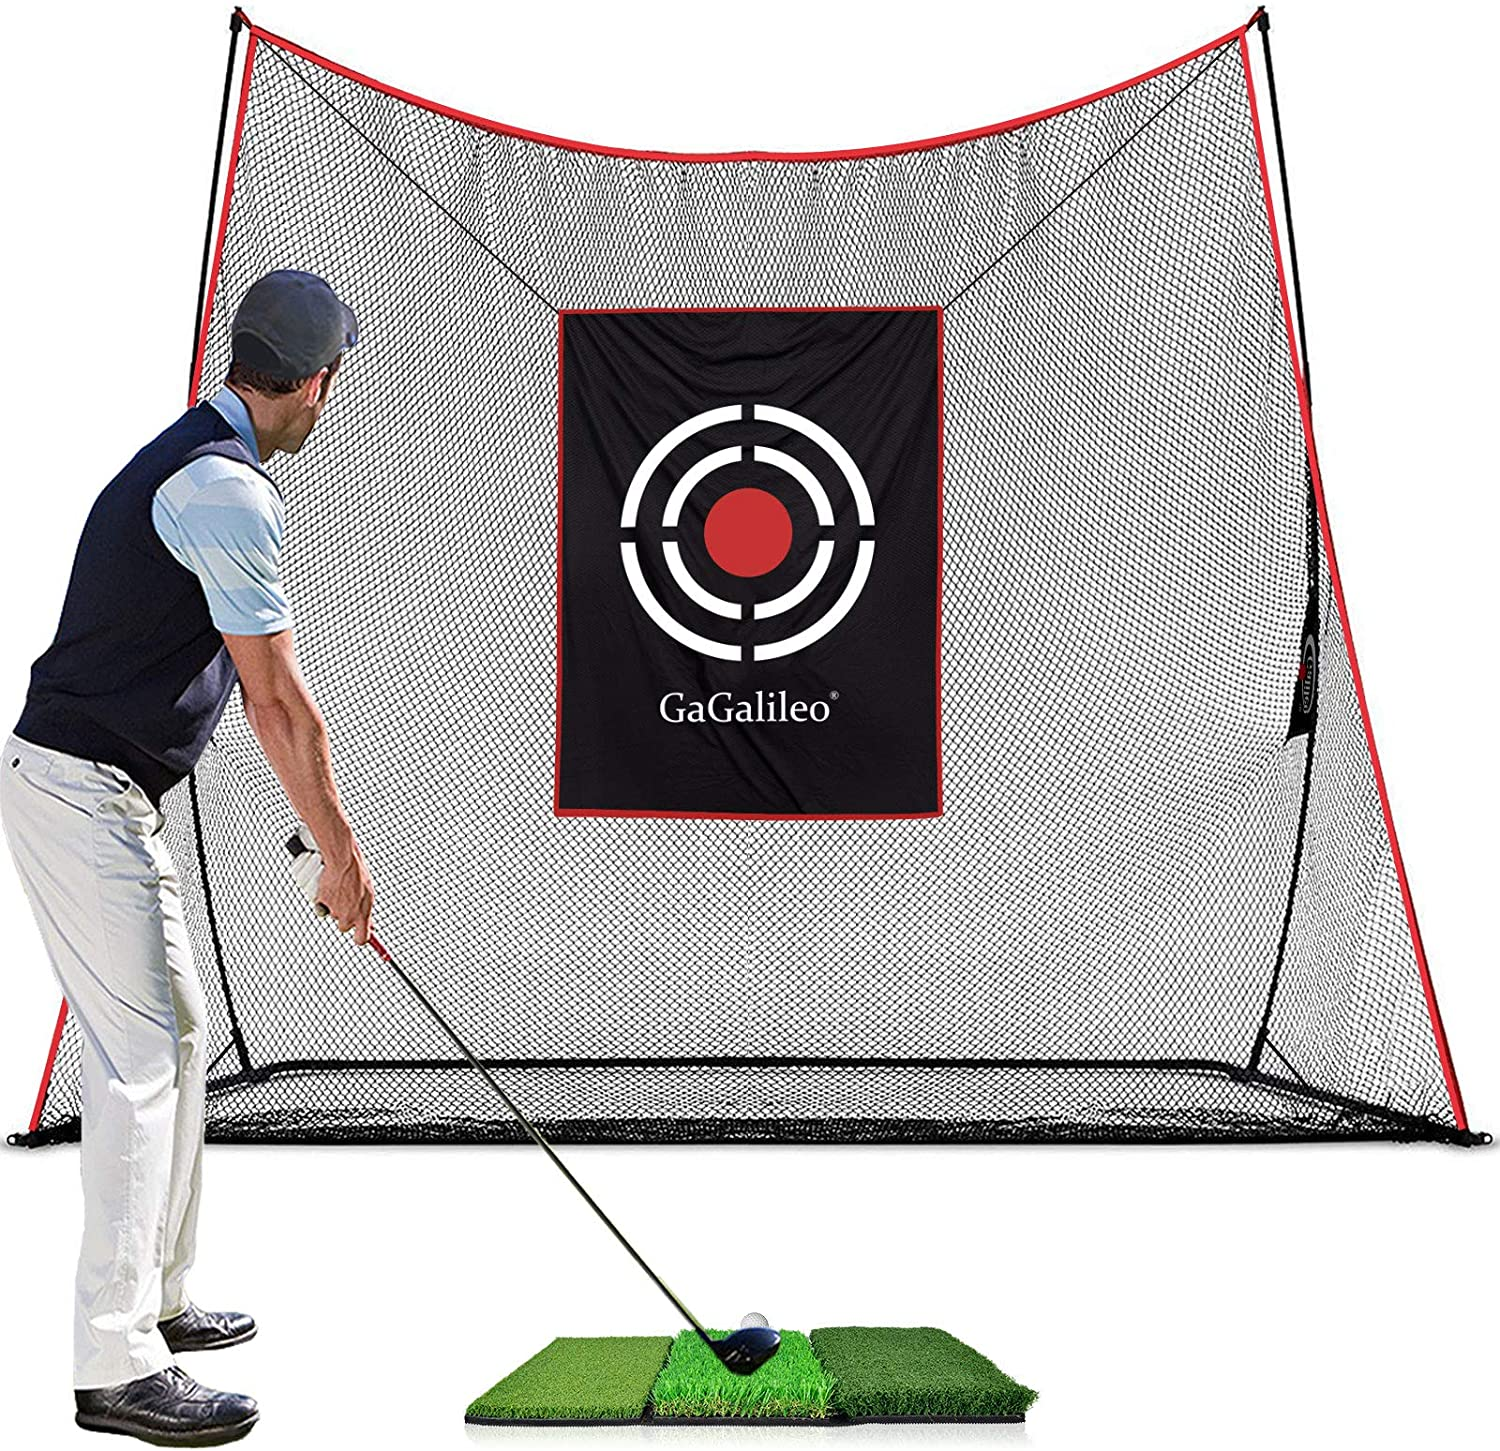 Galileo Sports Golf Practice Nets Golf Net for Backyard 10'(L)X 8'(H)X 3'(D) Golf Driving Range with Target and Carry Bag |Heavy Duty Golf Net 2021